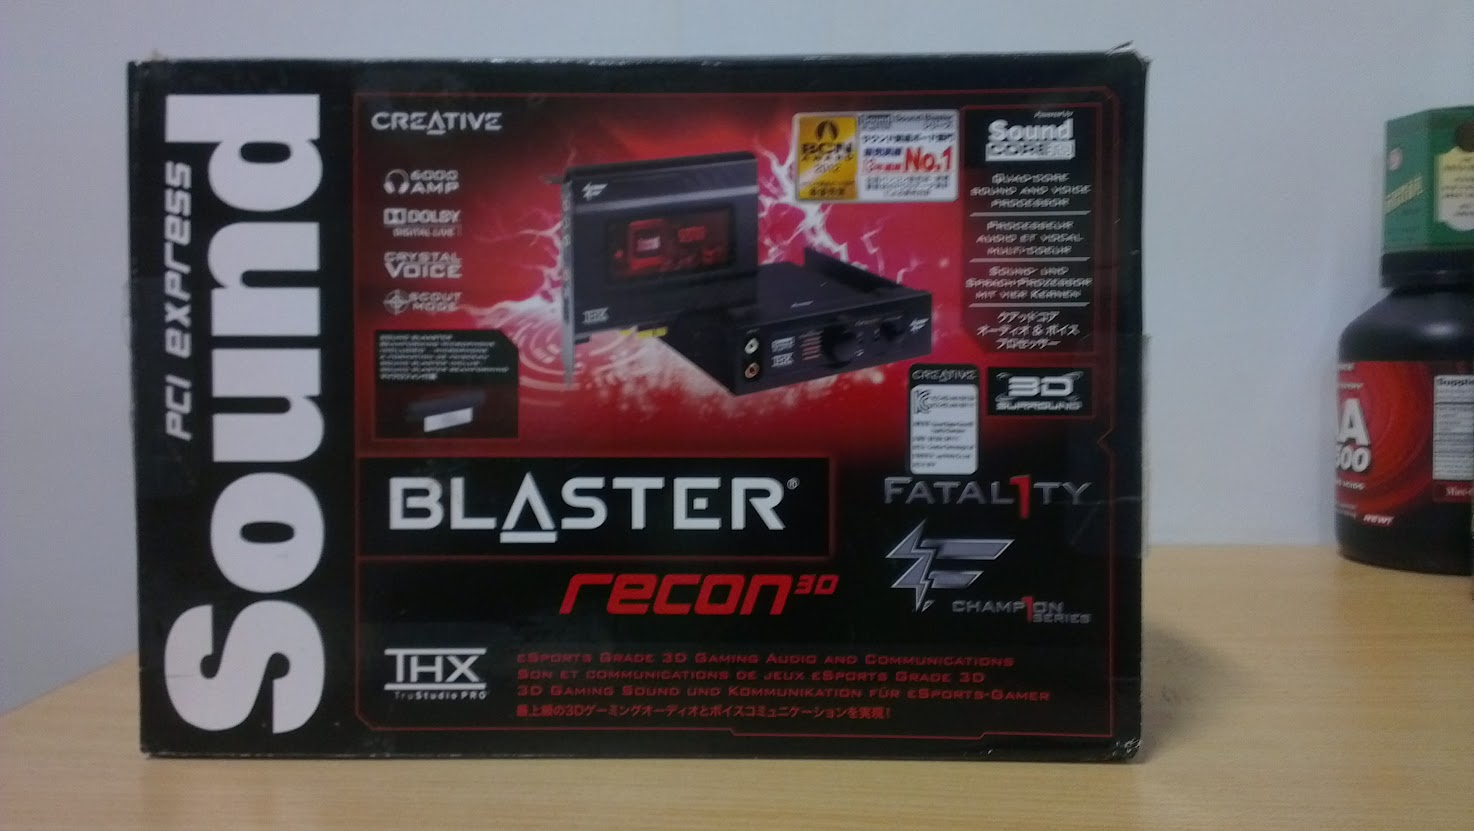 sound blaster recon 3d fatal1ty drivers